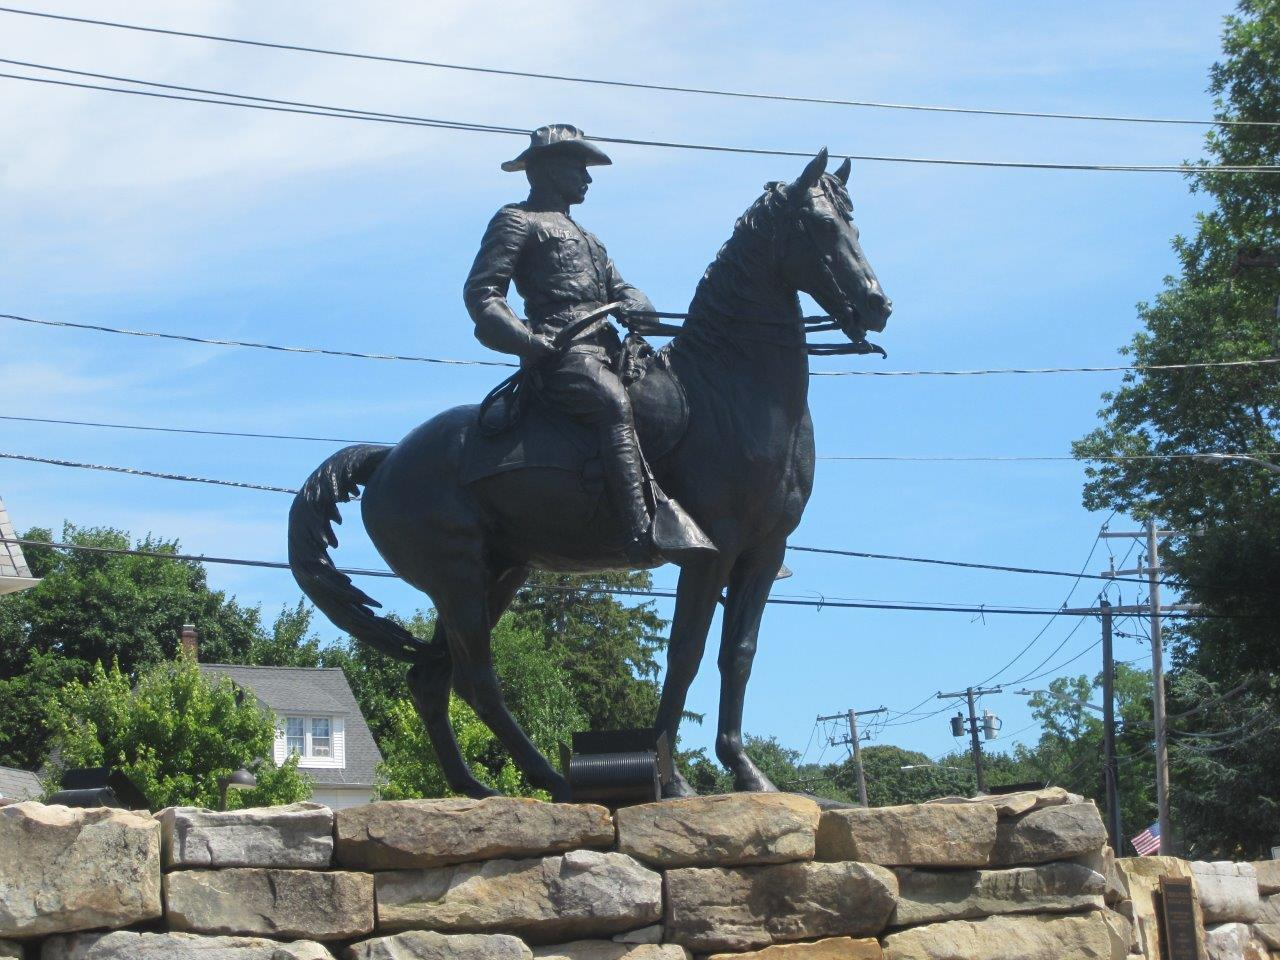 Theodore Roosevelt statue in Oyster Bay